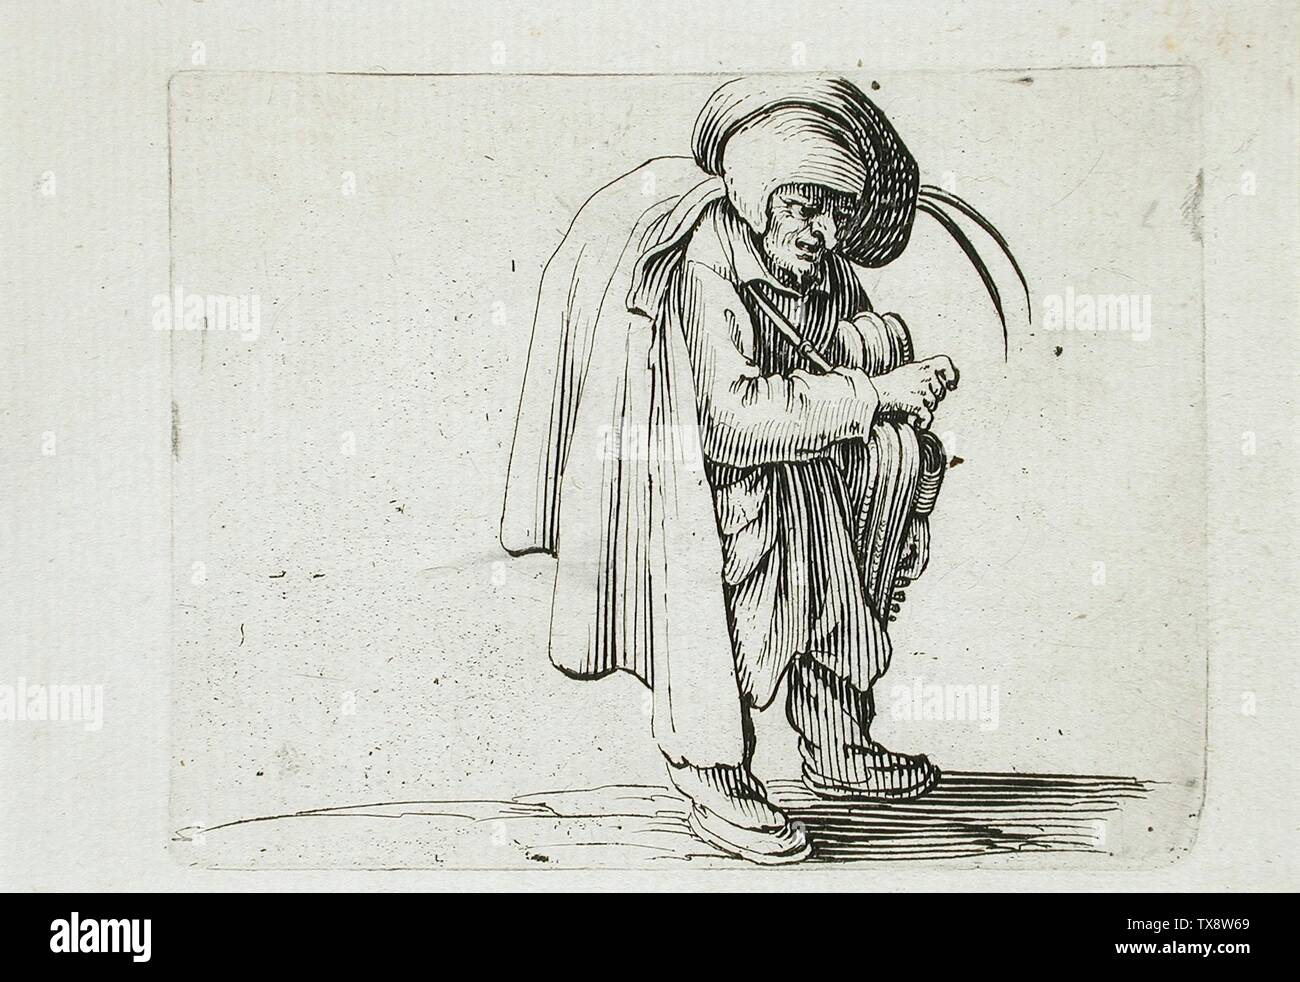 'Man with a Large Hunchback Adorned with a Row of Buttons; English:  France, 1616 Alternate Title: L'homme au Gros Dos Orné d'Une Rangeé de Boutons Series: Les Gobbi, plate 10 Prints; engravings Etching with engraving Anonymous gift (M.65.26.27) Prints and Drawings; 1616date QS:P571,+1616-00-00T00:00:00Z/9; ' - Stock Image